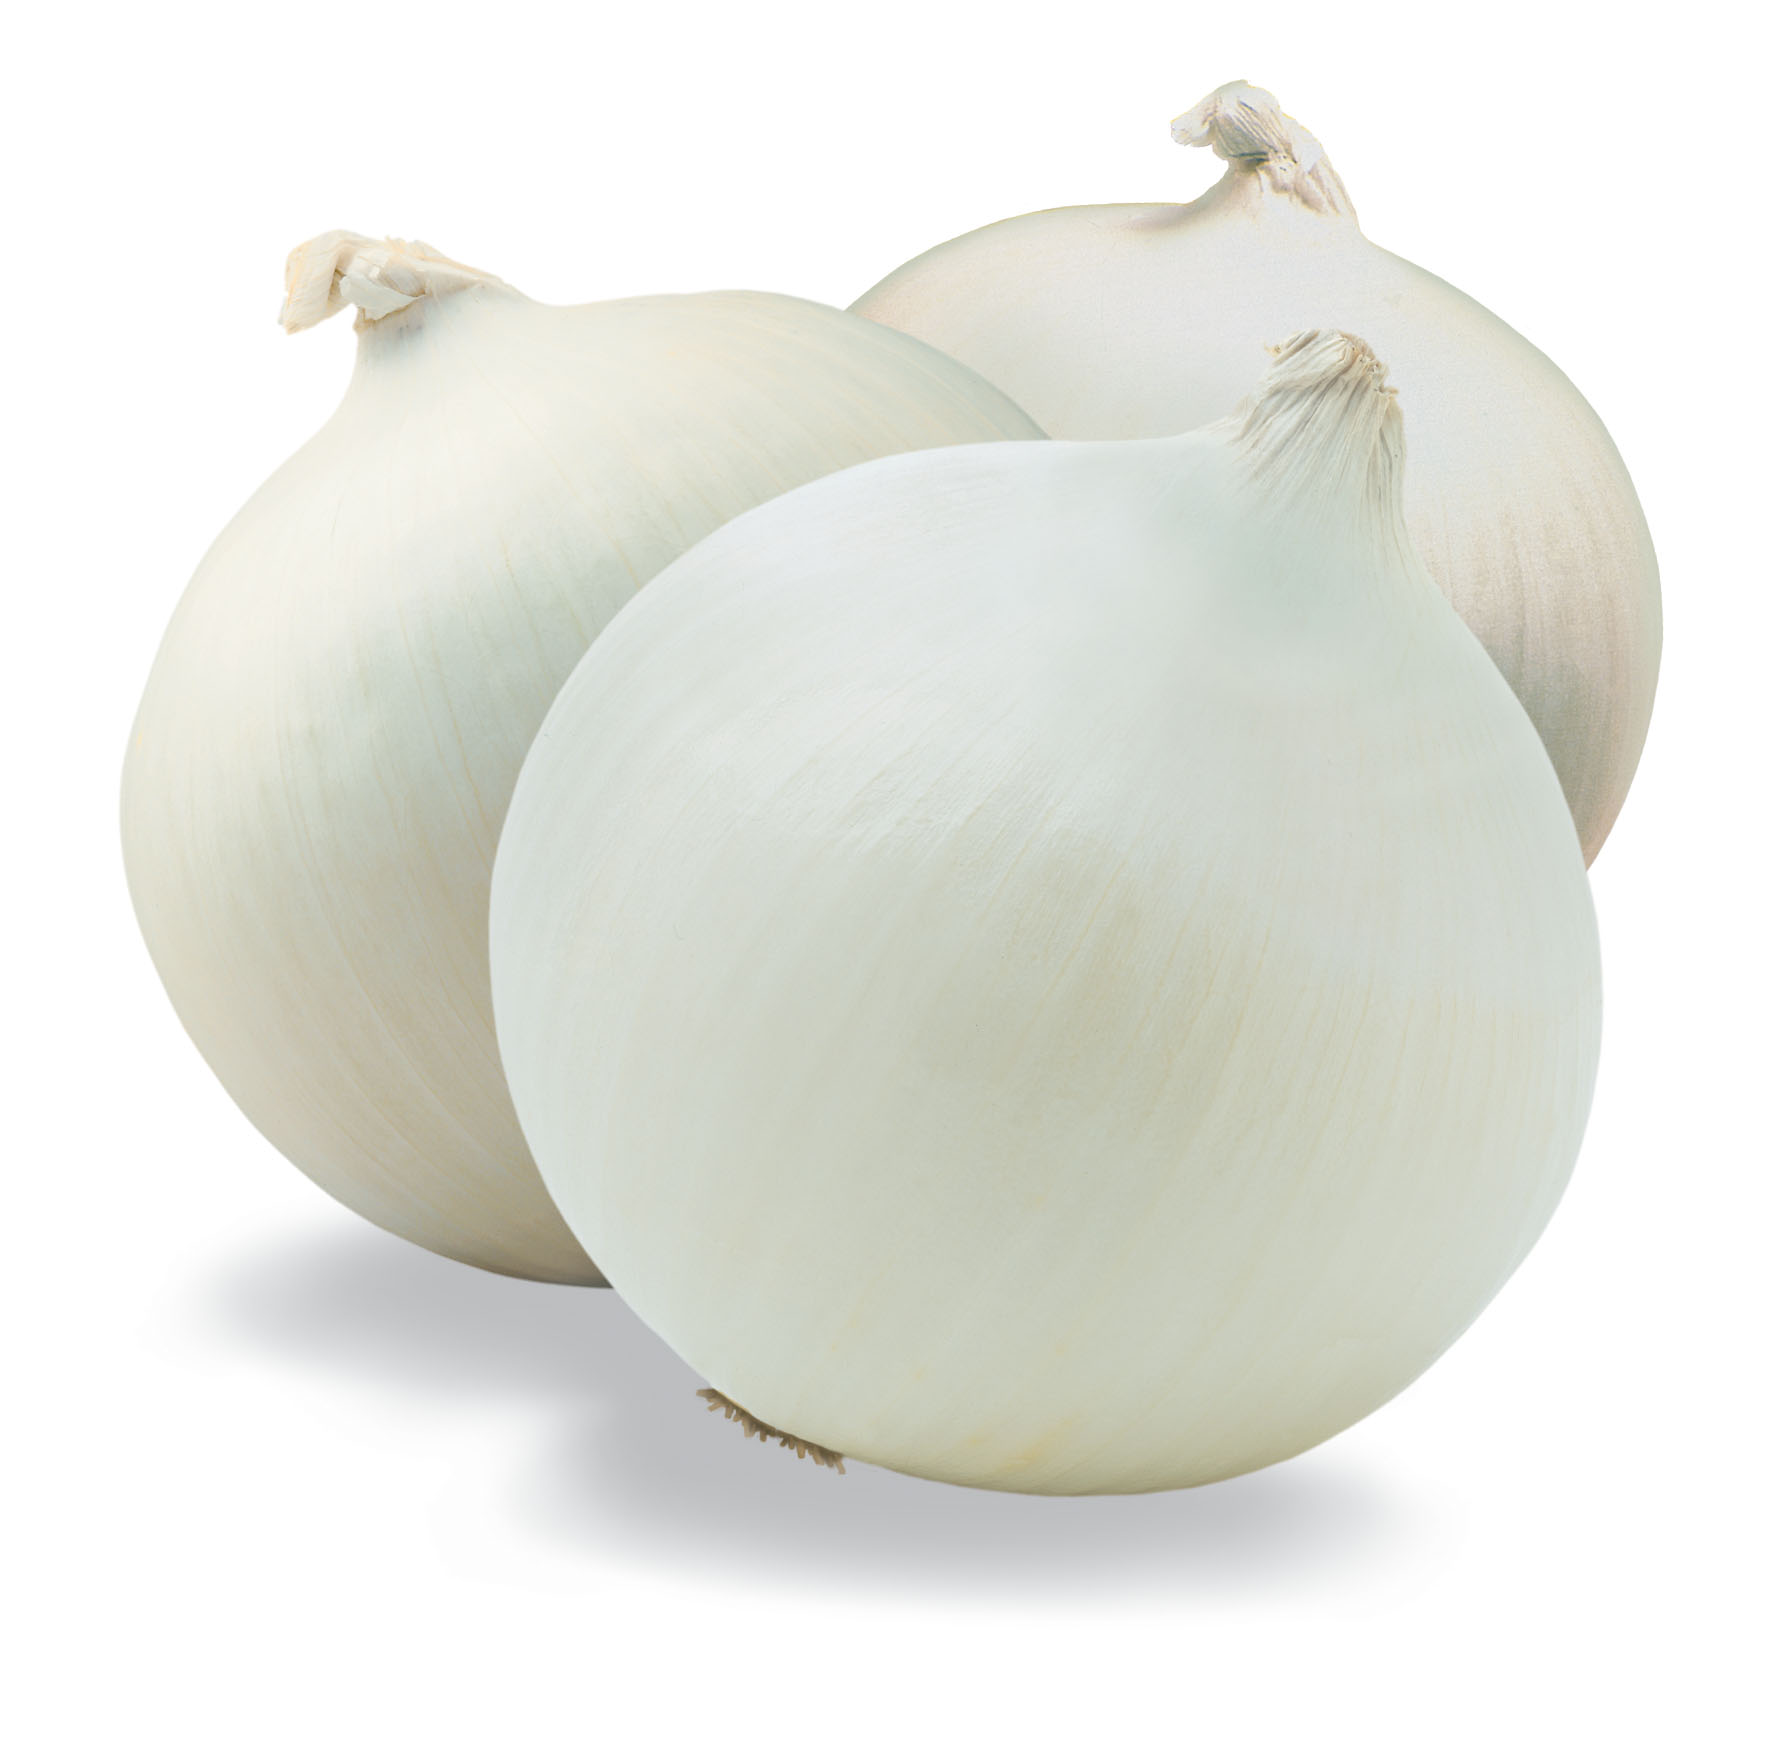 Onion Links | newhairstylesformen2014.com